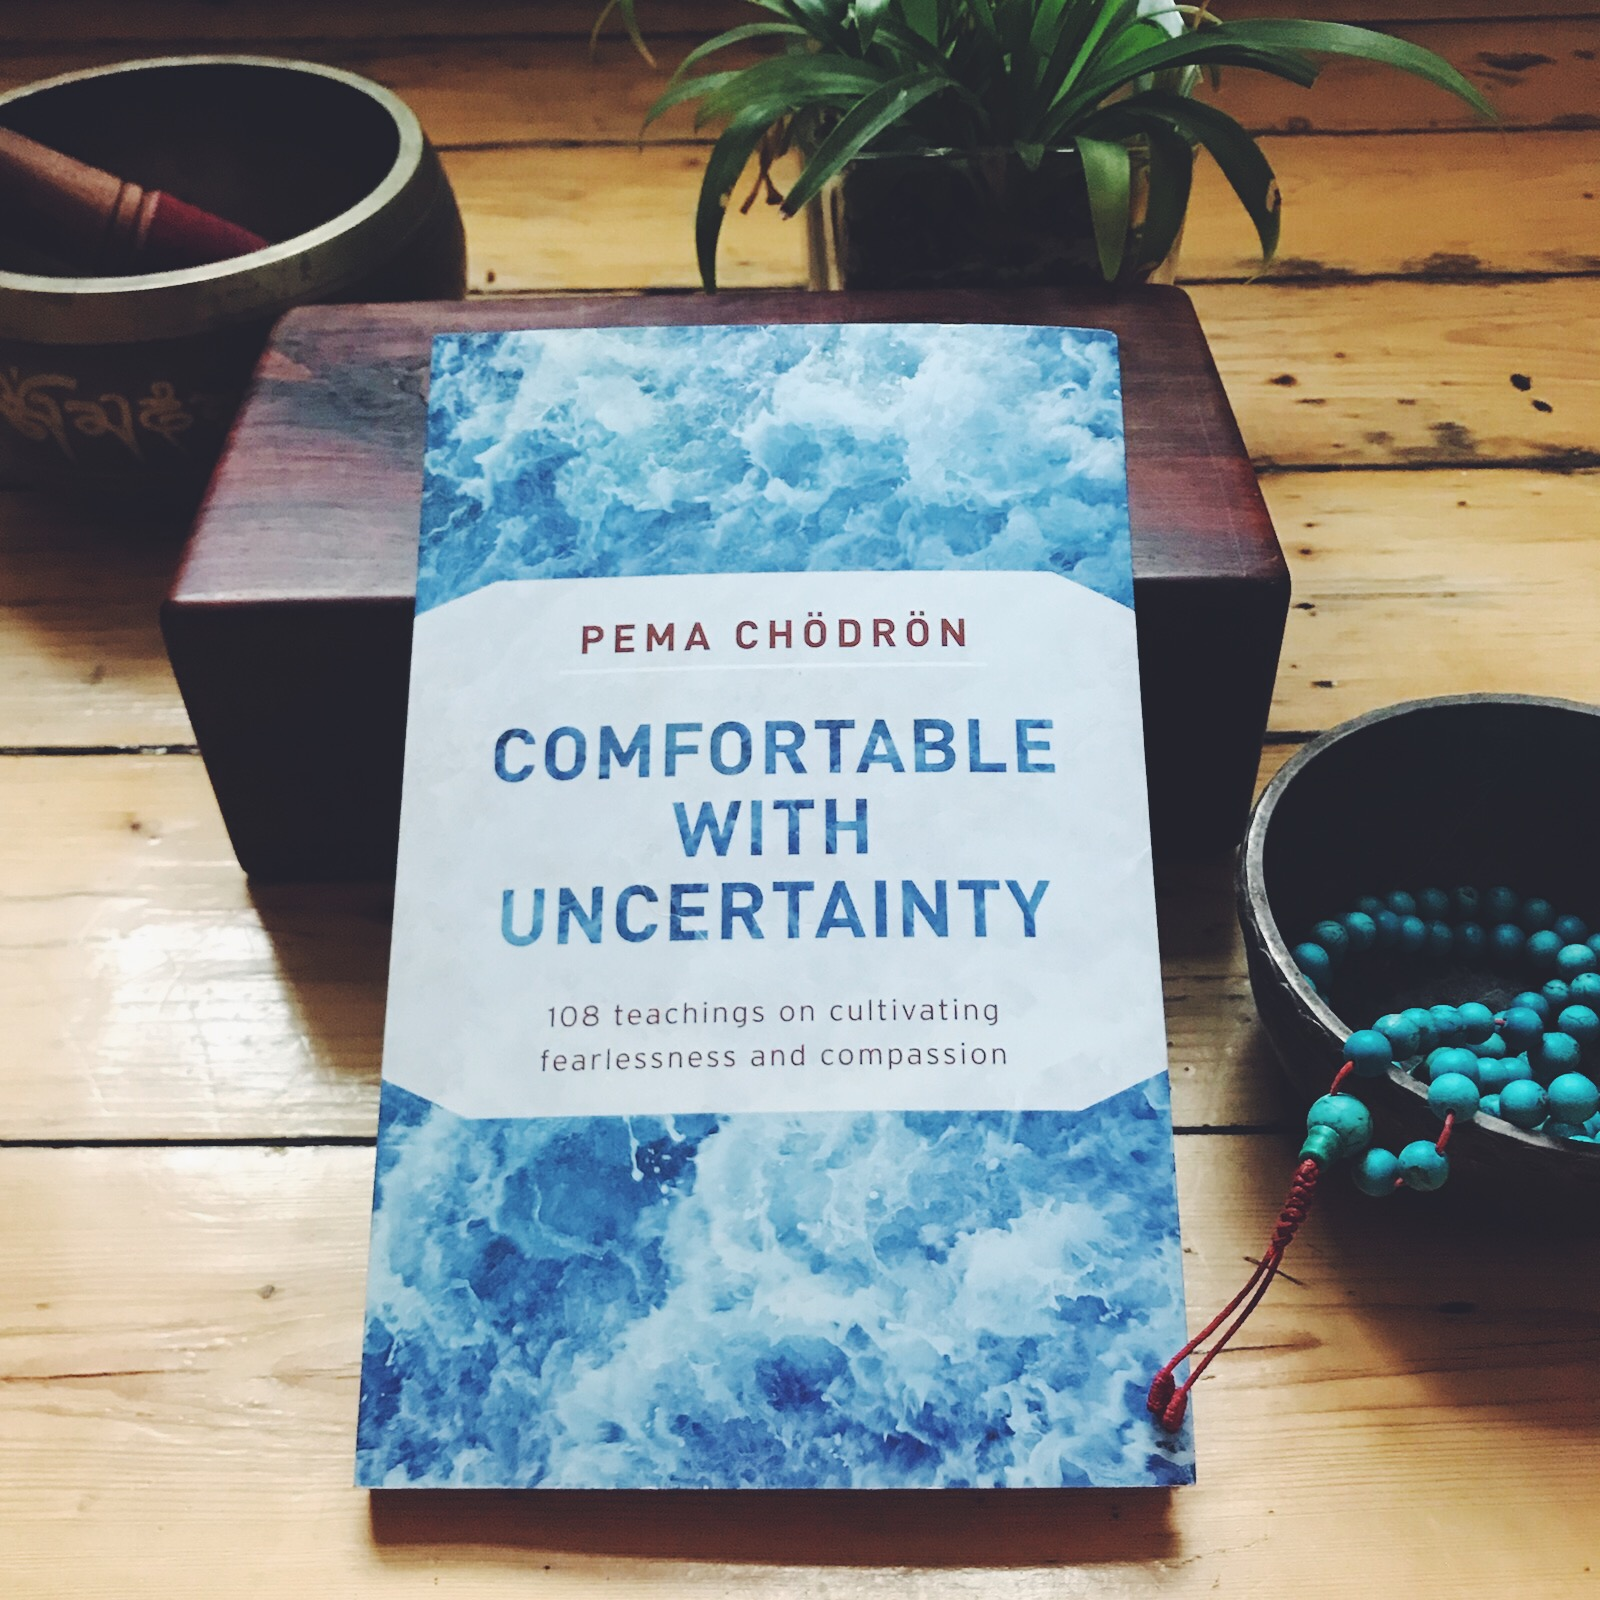 Comfortable with Uncertainty by Pema Chödrön